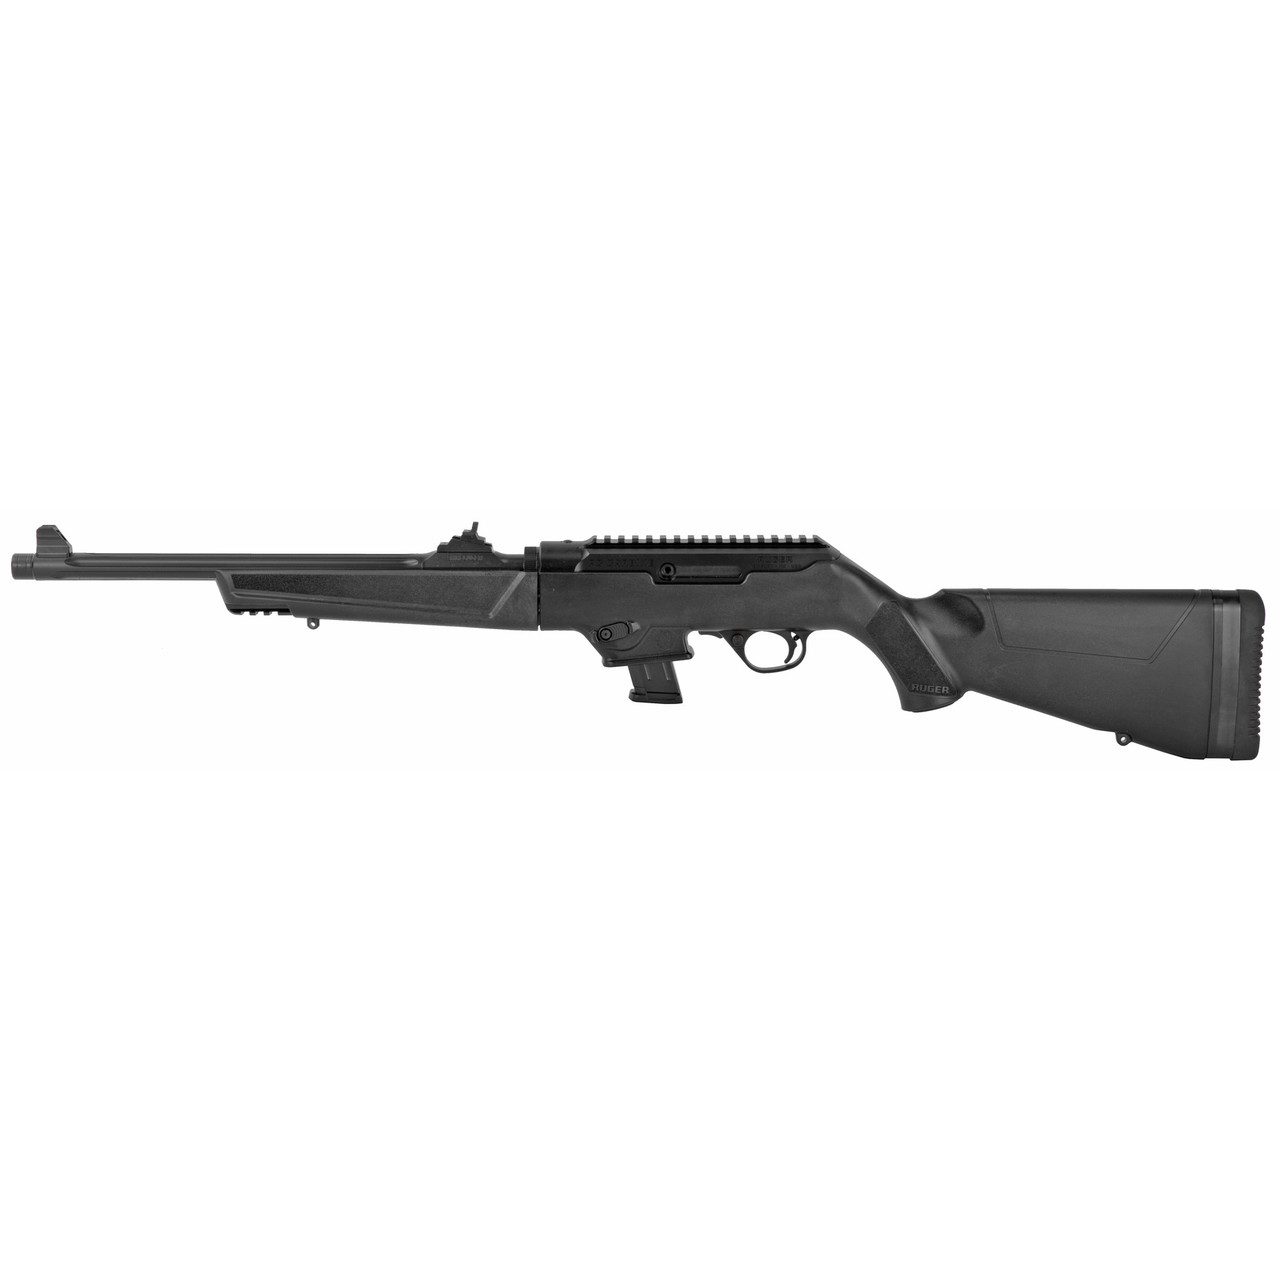 Ruger PC Carbine (Non Threaded) CALIFORNIA LEGAL - 9mm